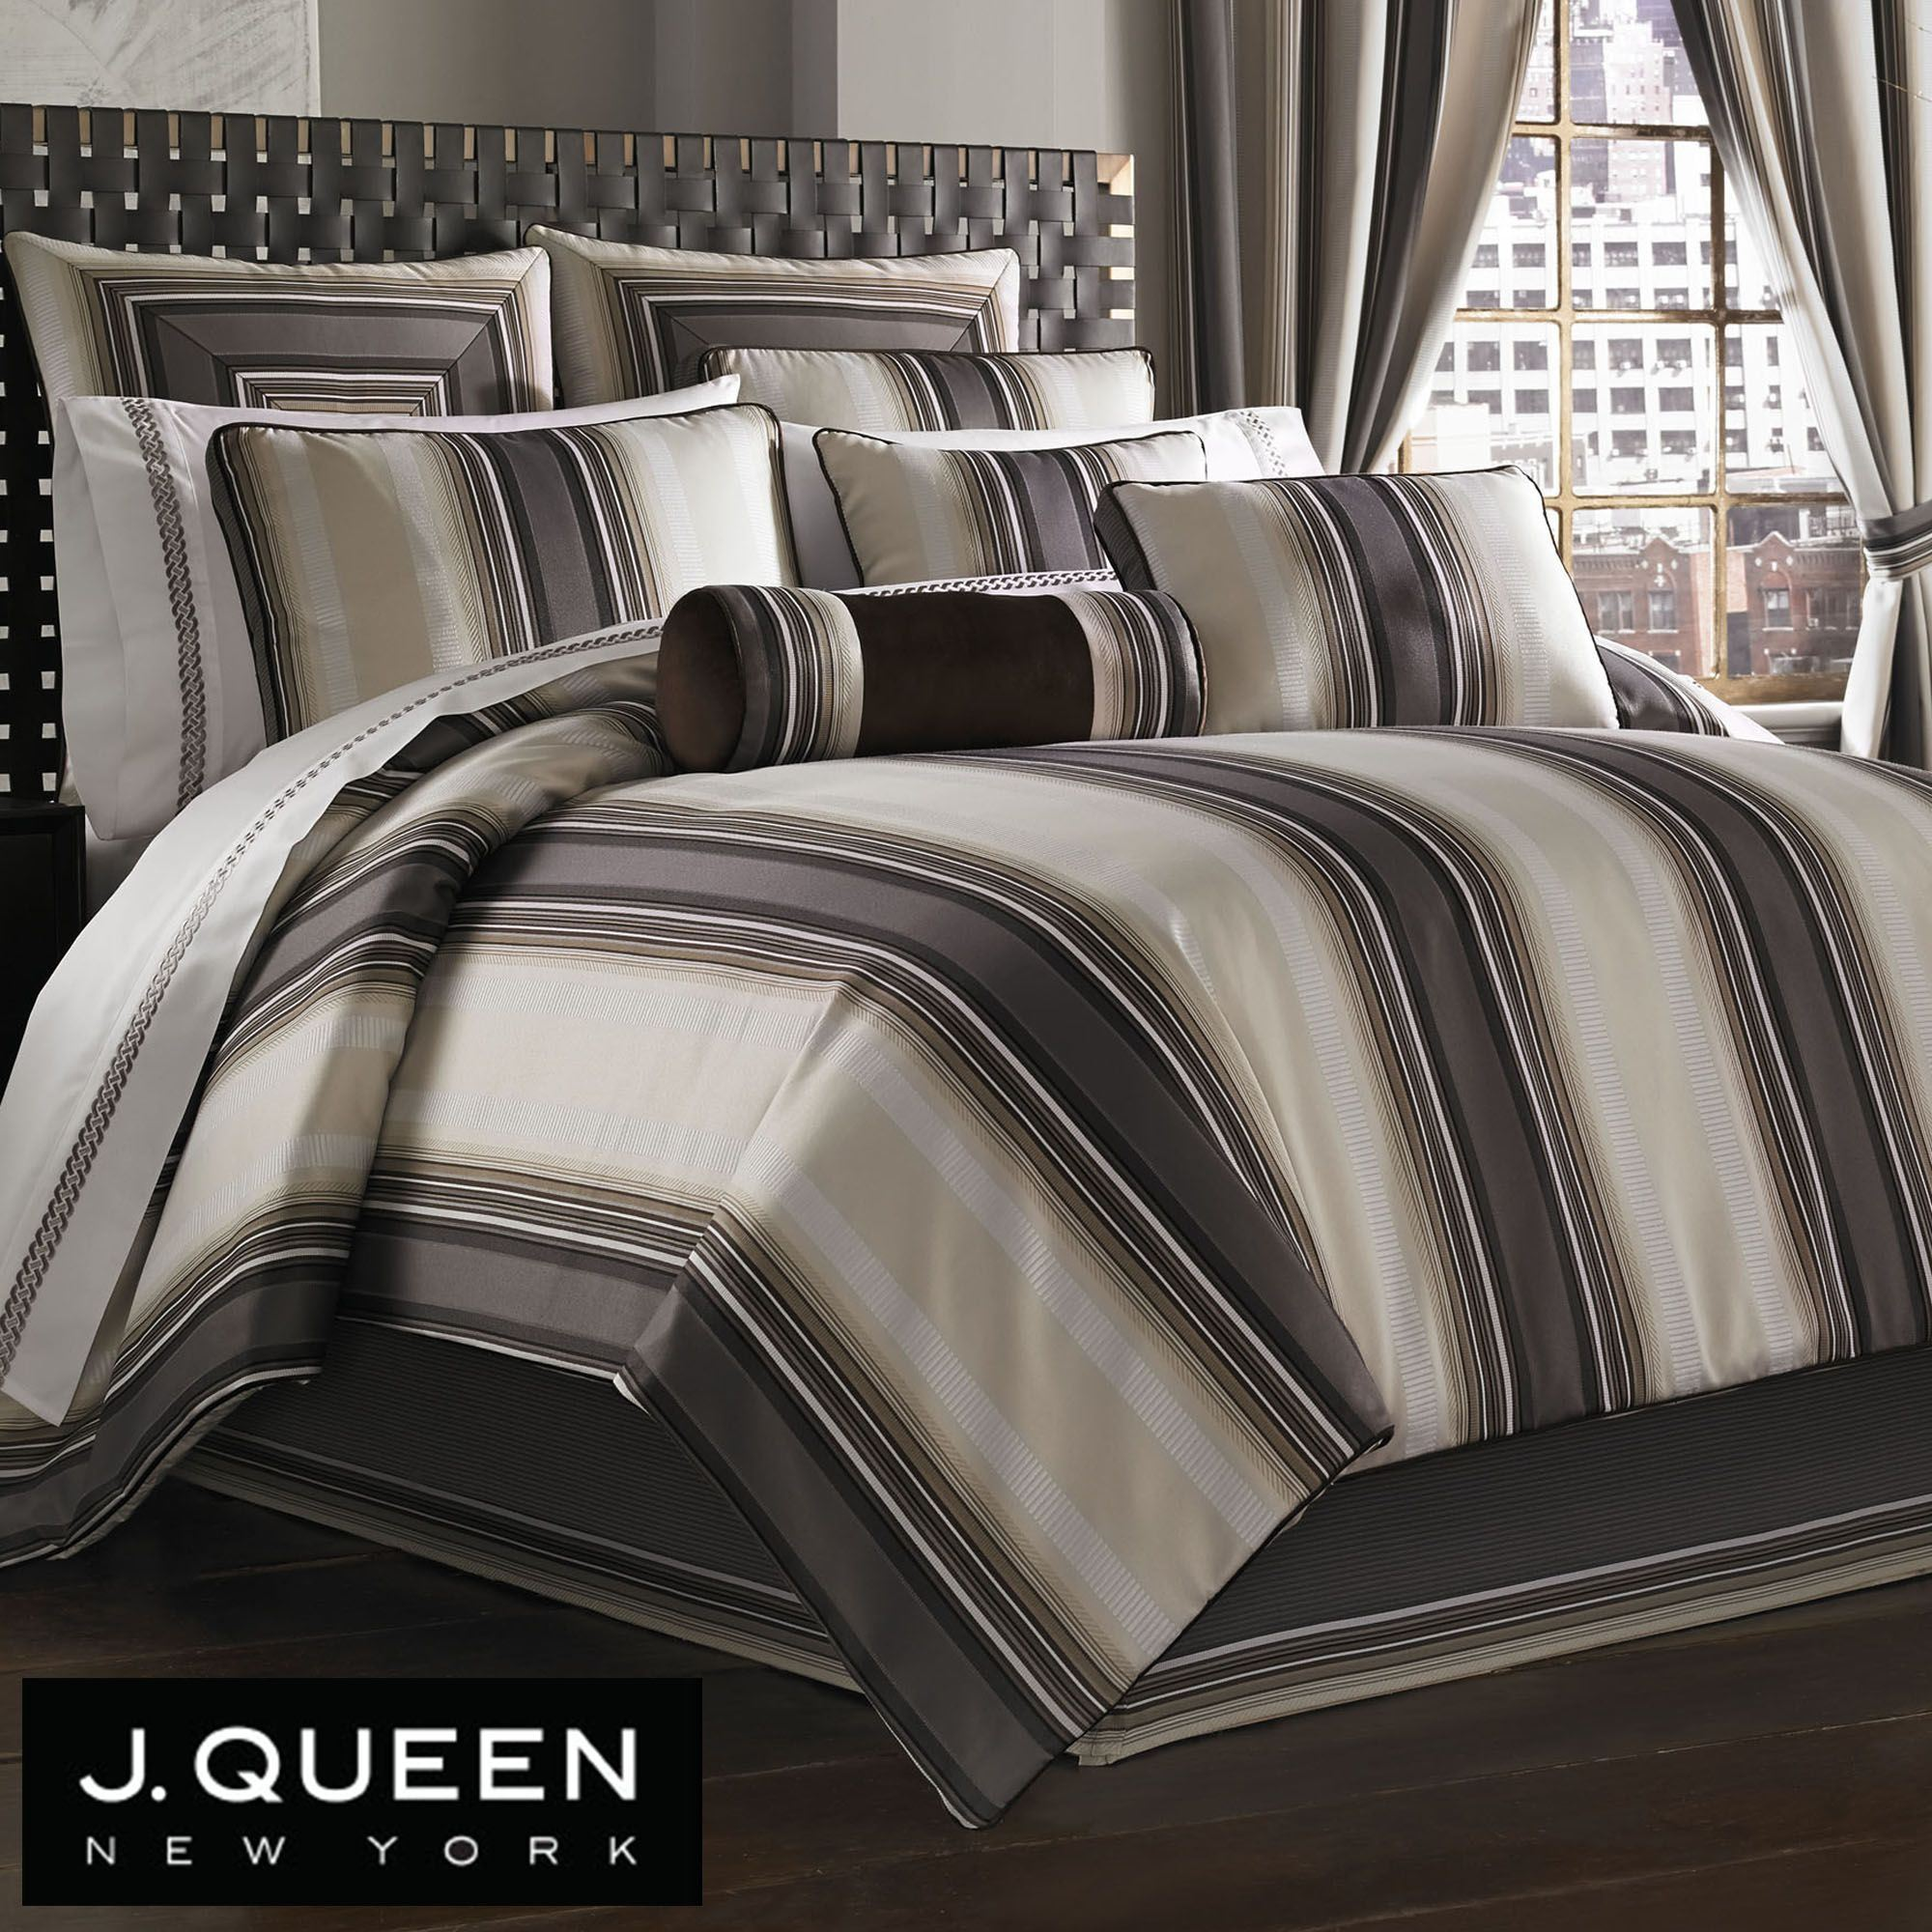 carousel set pink striped and of sets white tan covers gray duvets solid grey plain brown comforter quilt uk king duvet cover stripe black horizontal single bedspread designs size light queen dark bedding full twin